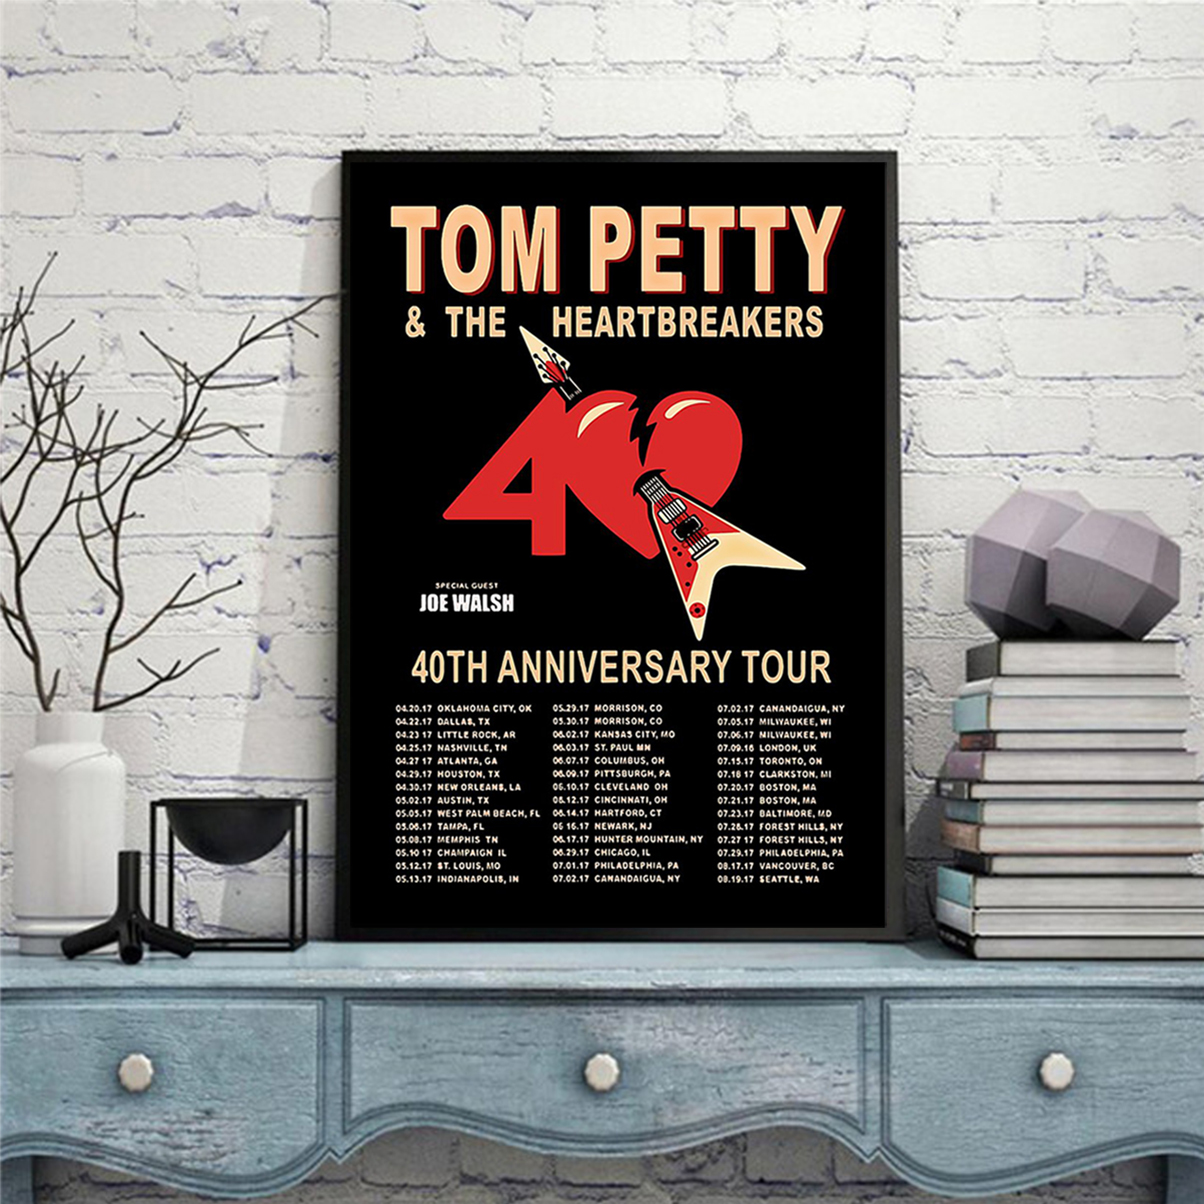 Tom petty and the heartbreakers 40th anniversary tour poster A2